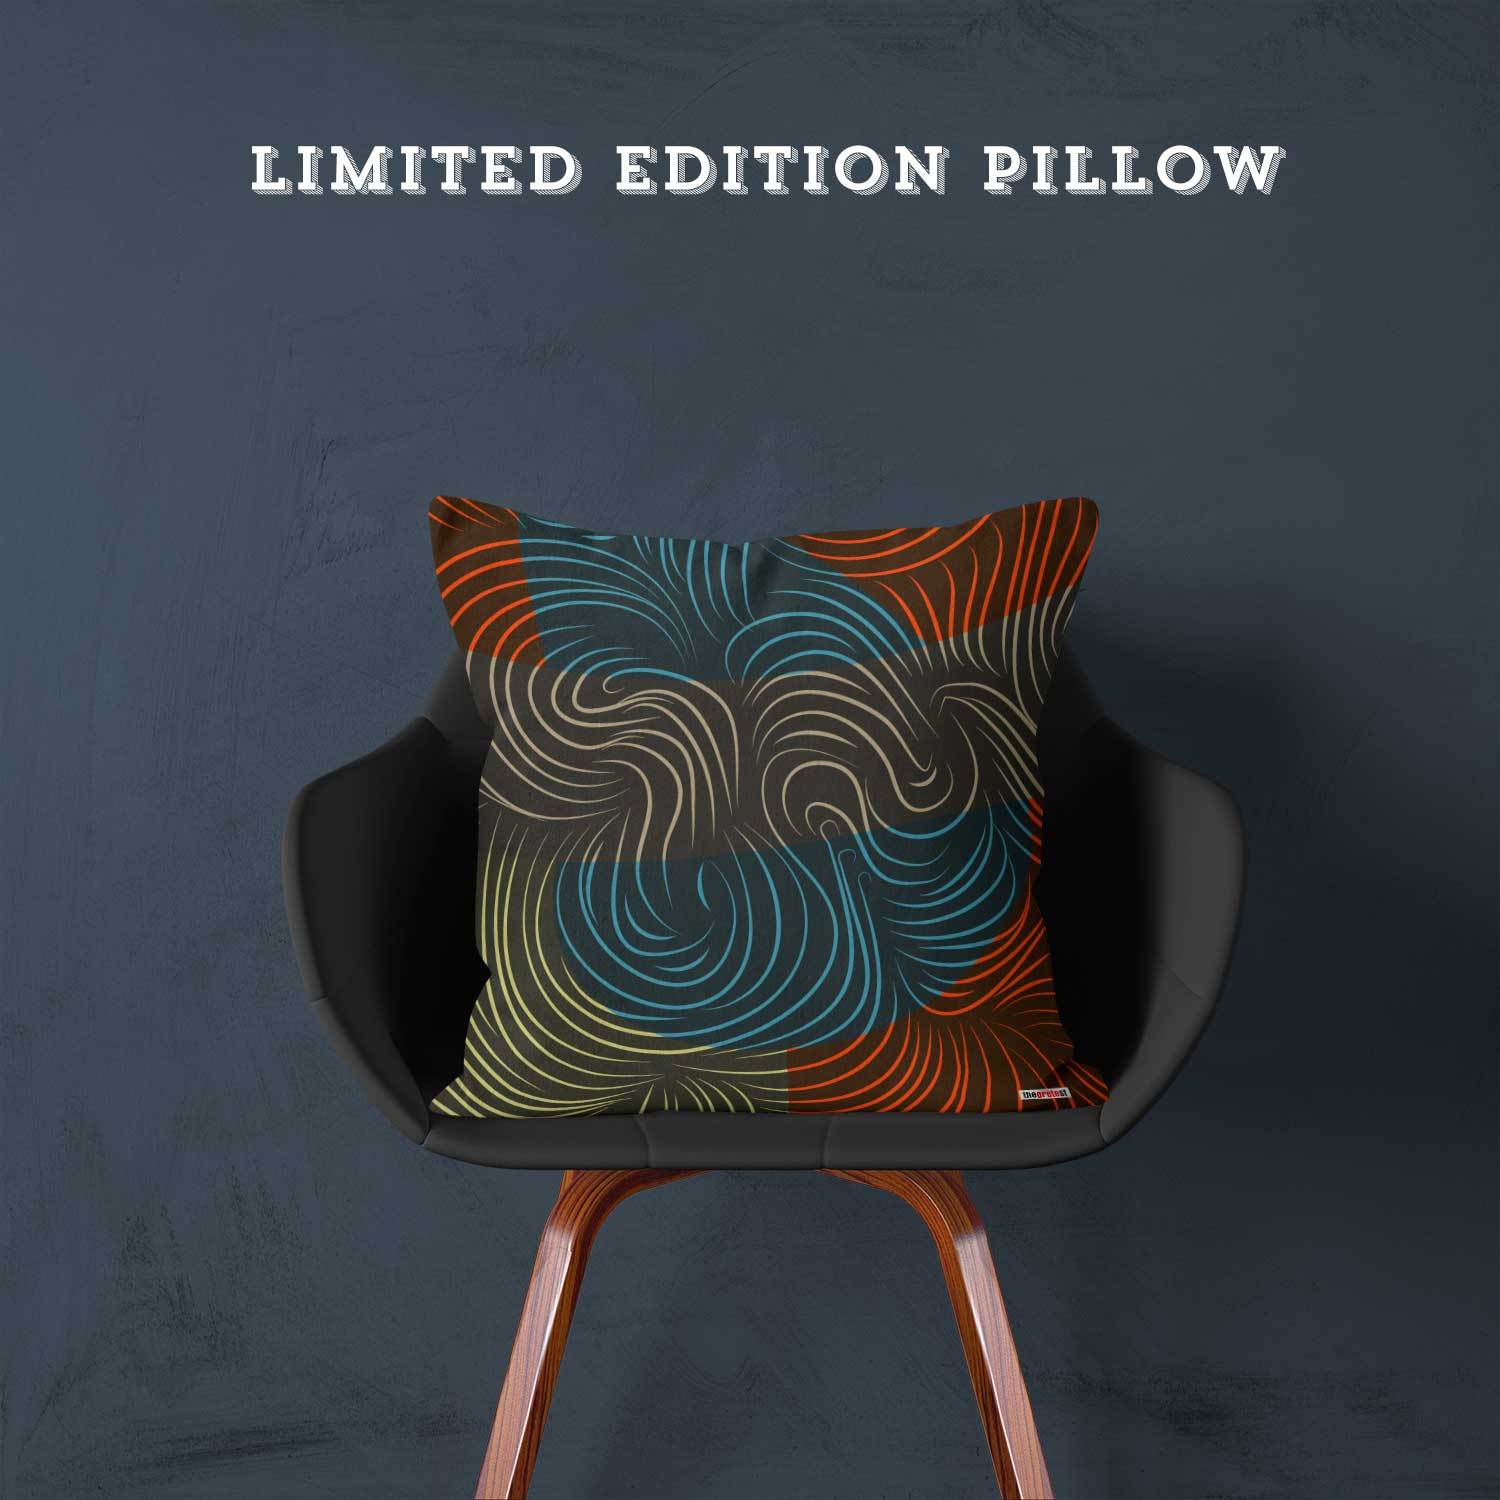 Limited Edition Pillow by The Gretest